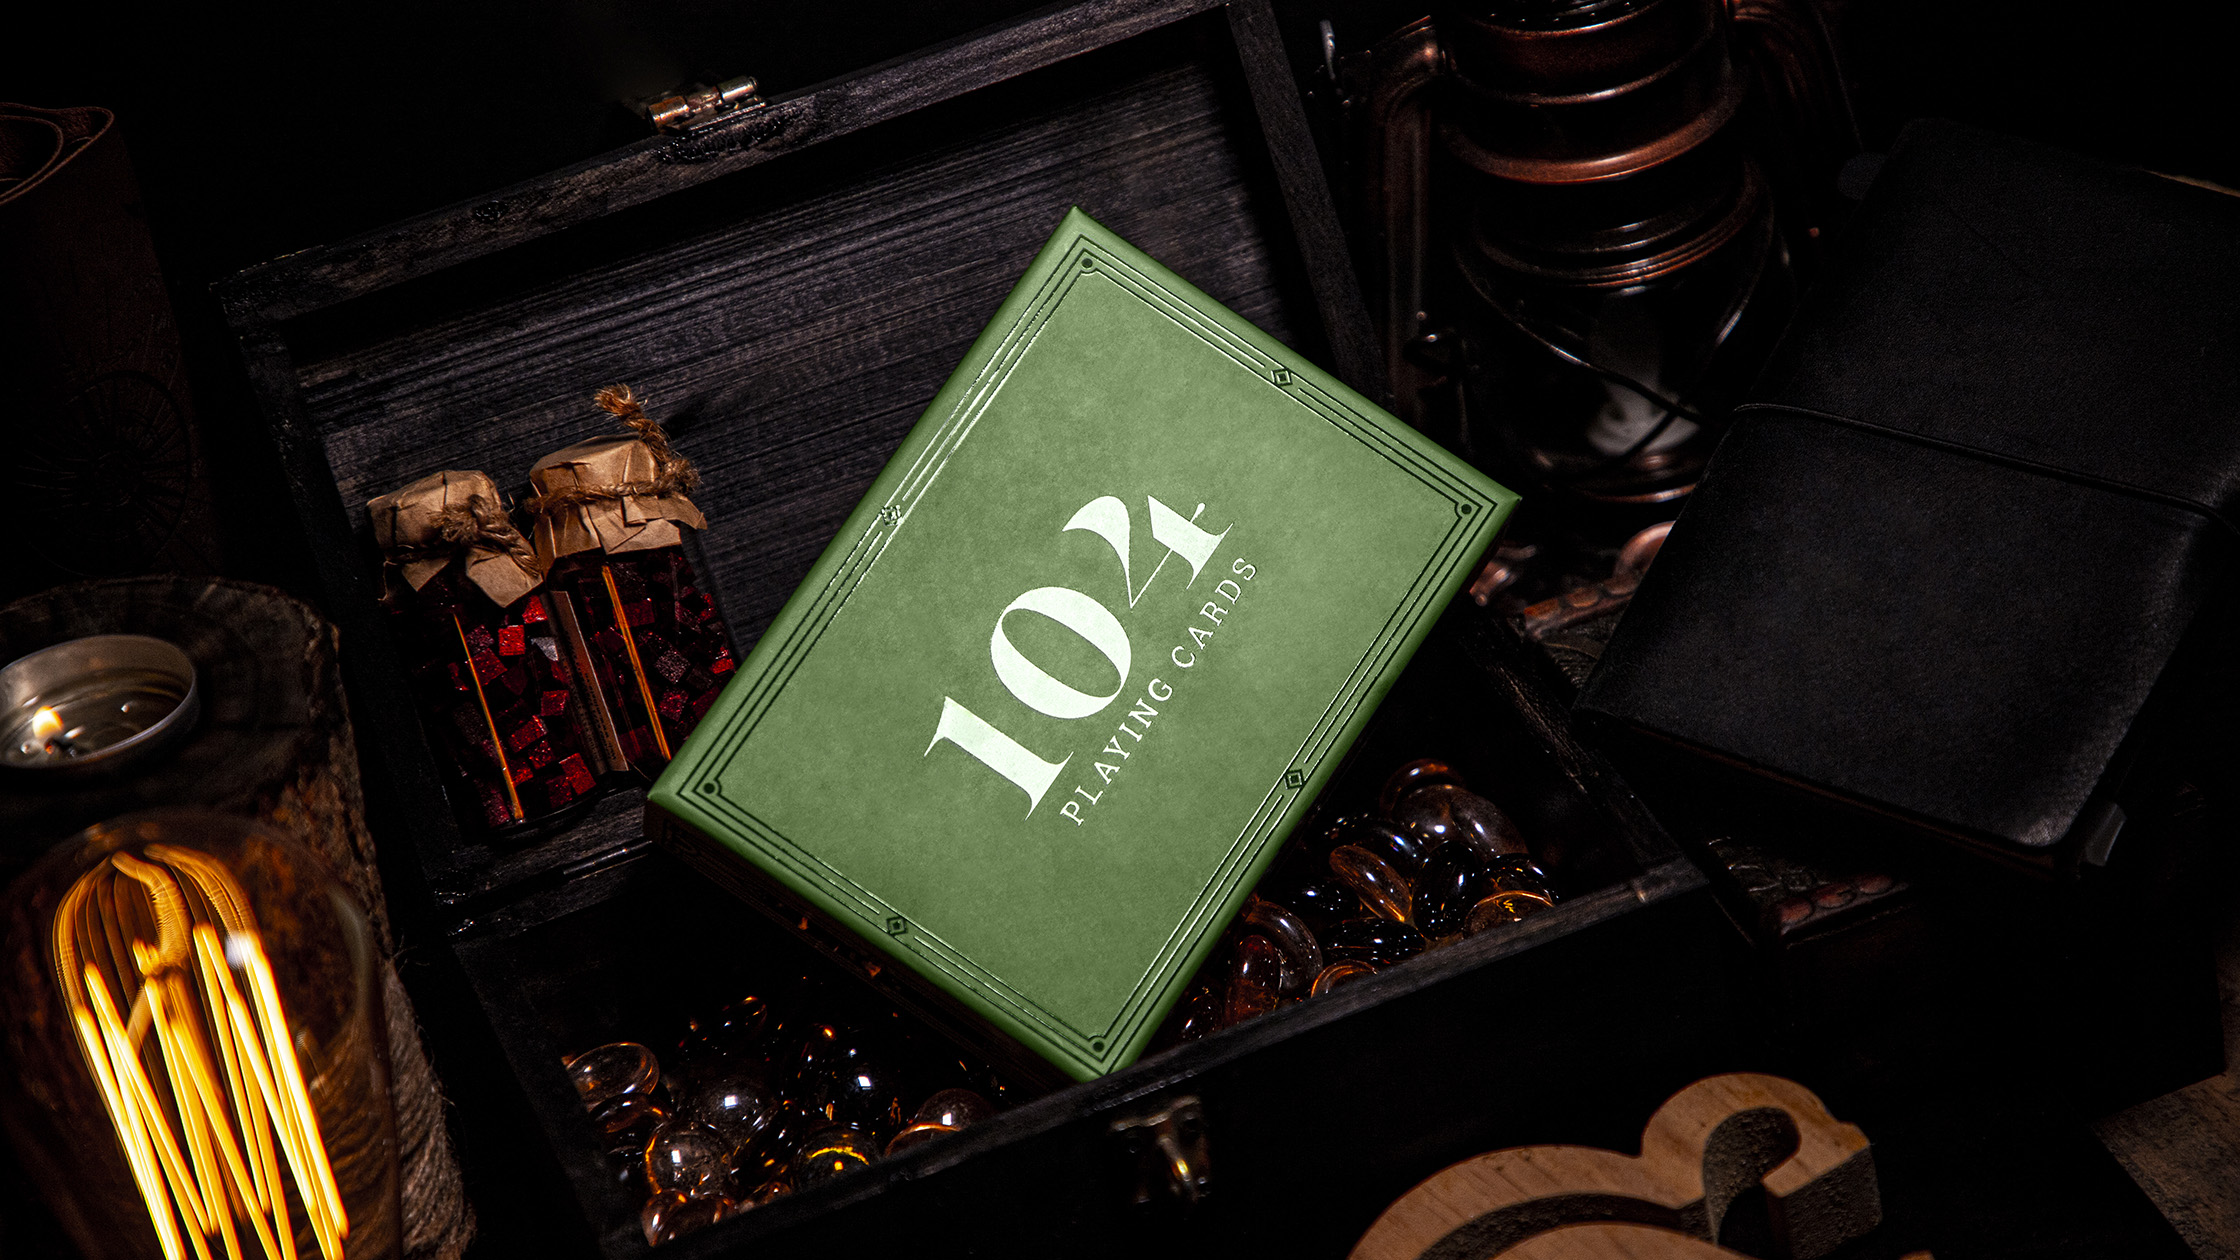 Tuyệt Duyệt Creates 104 Playing Cards Limited Edition for Cloever Co. & Game by Yanni Co.